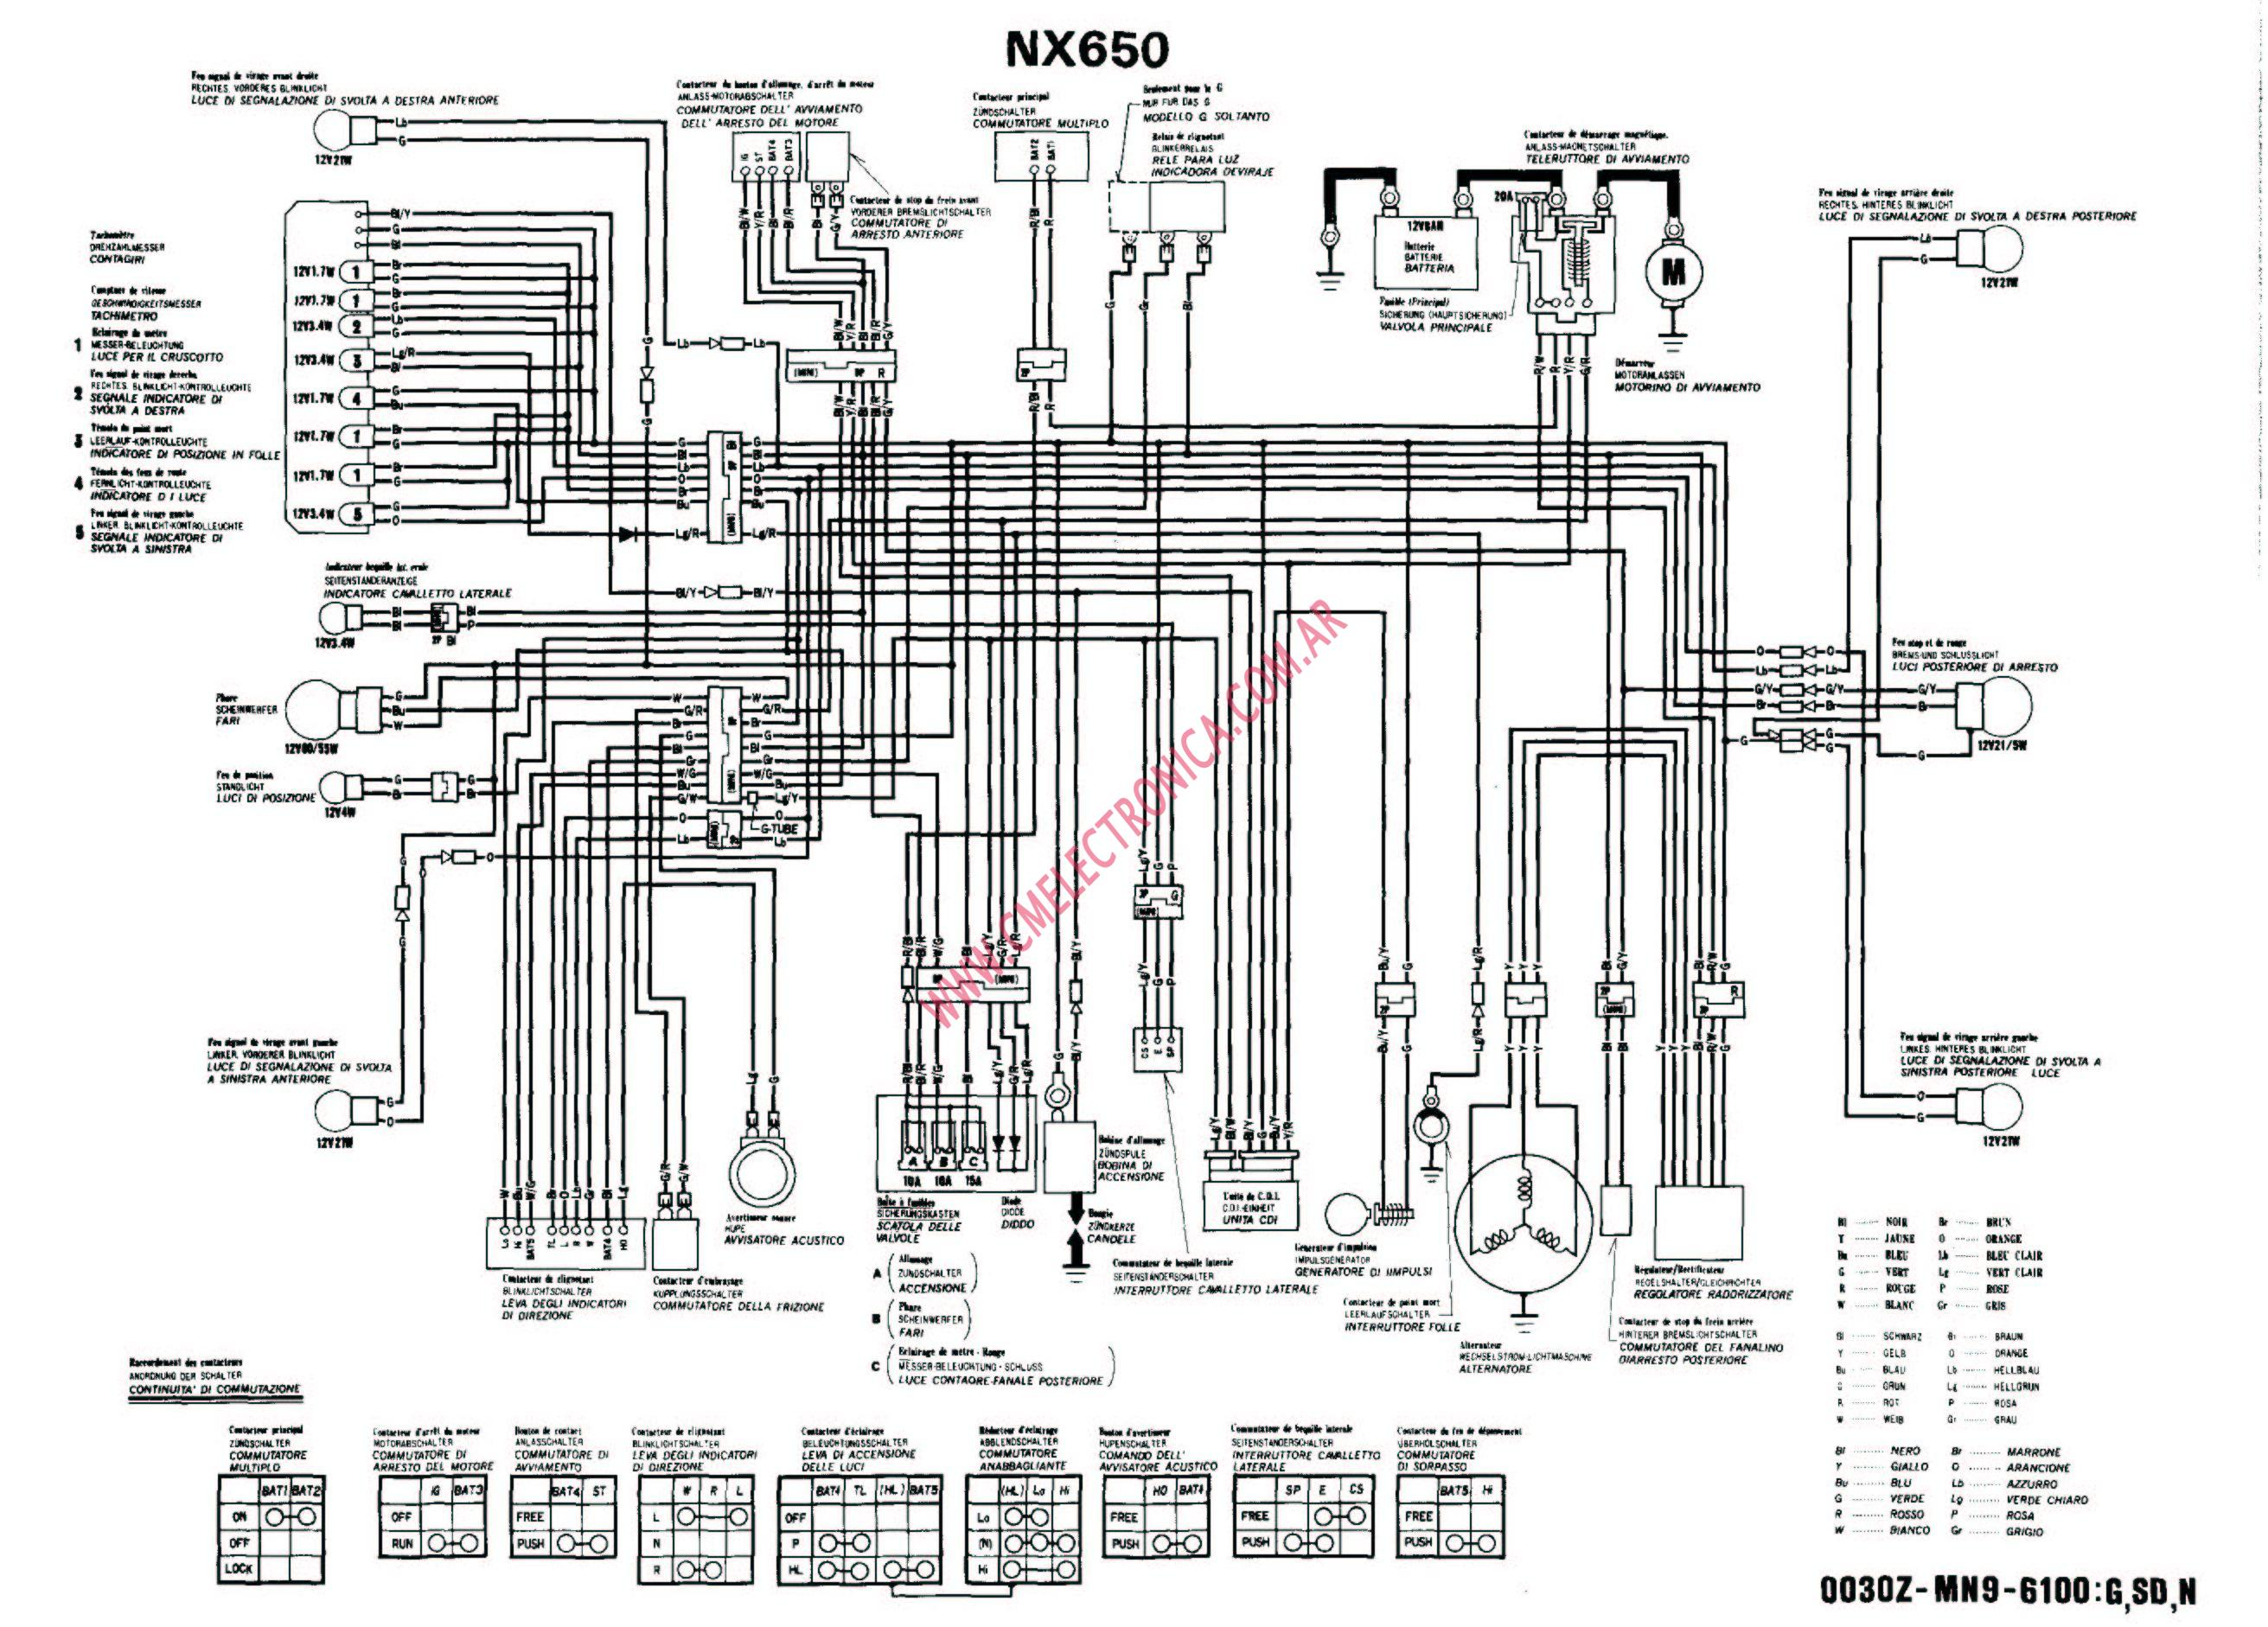 Wiring Diagram 1988 Honda Nx-650 Dominator